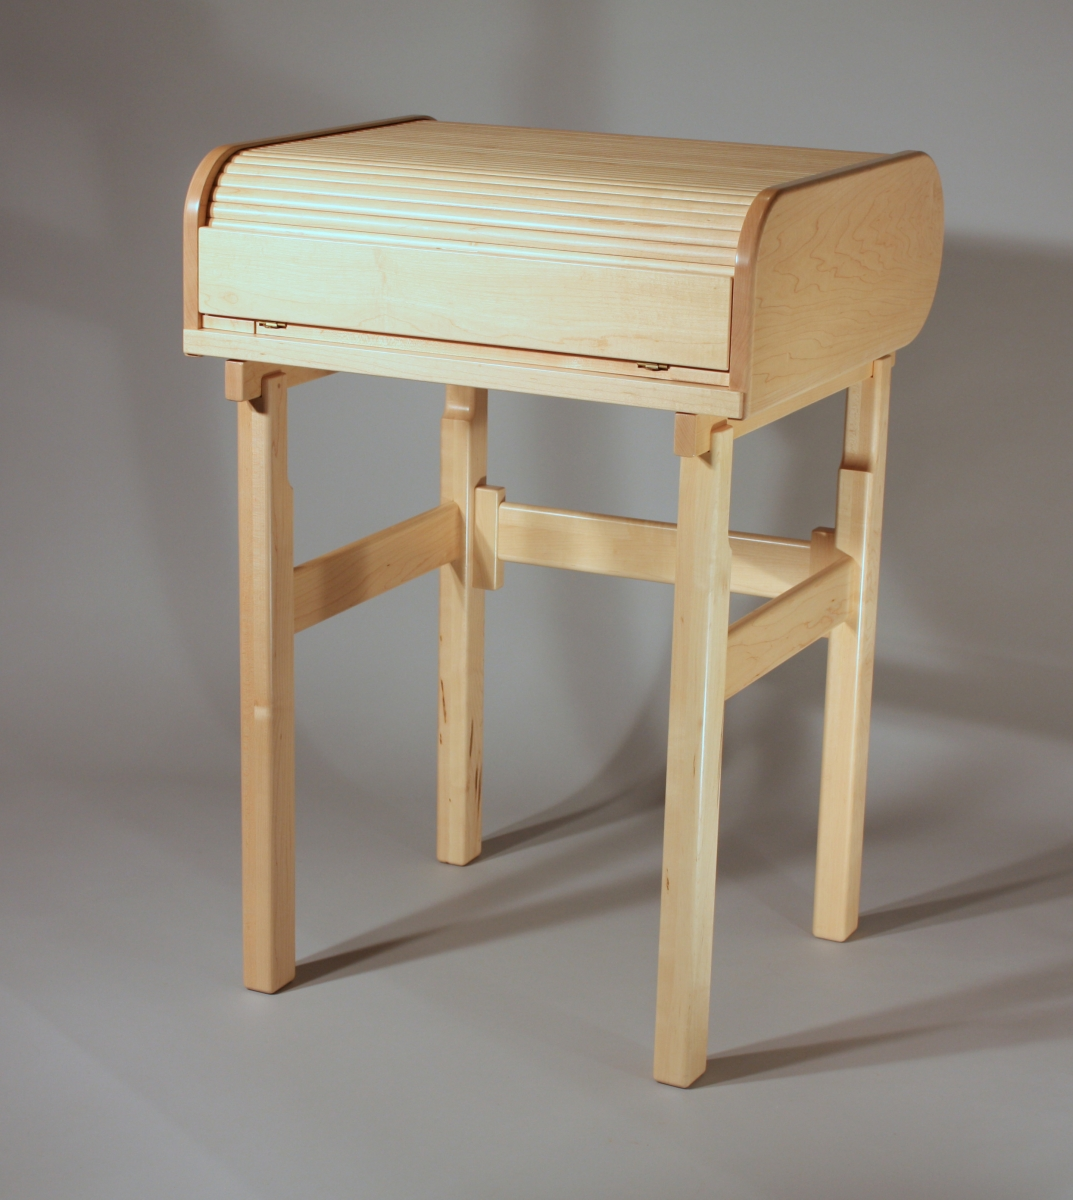 This Desk Can Be Provided With Electric Power Inside The